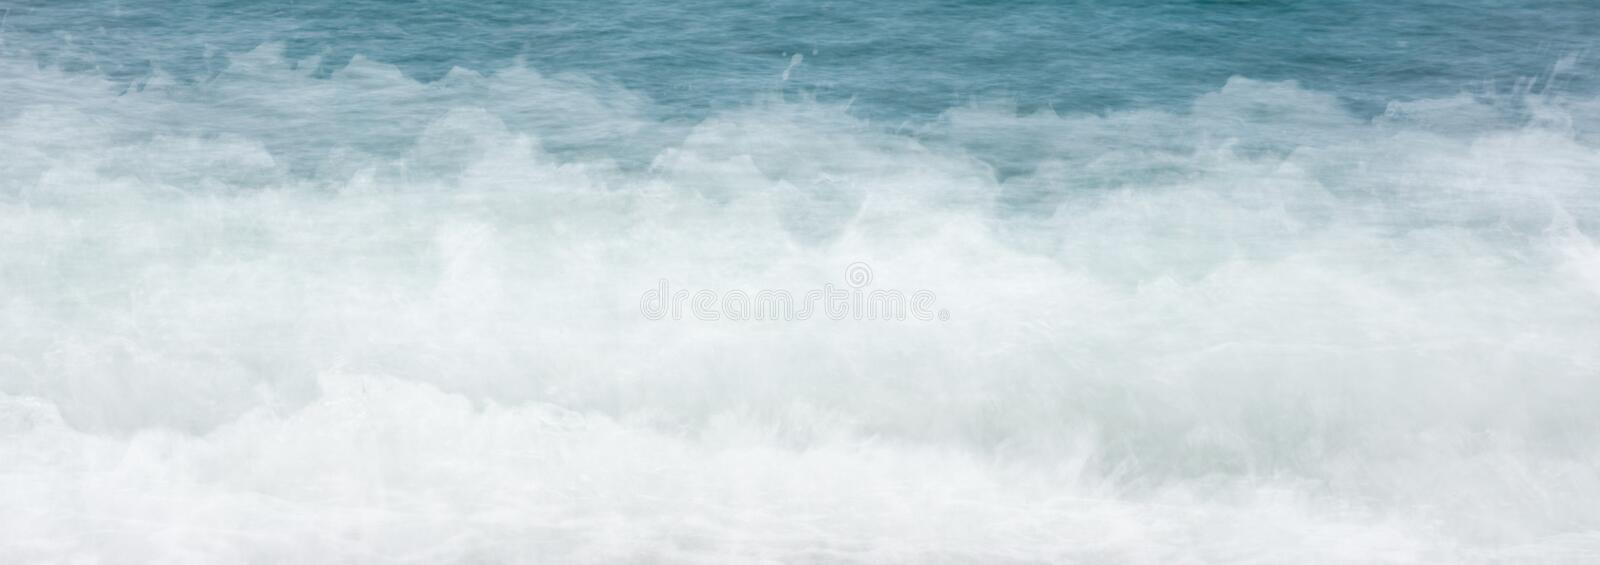 Web banner Sea water waves foam background royalty free stock image